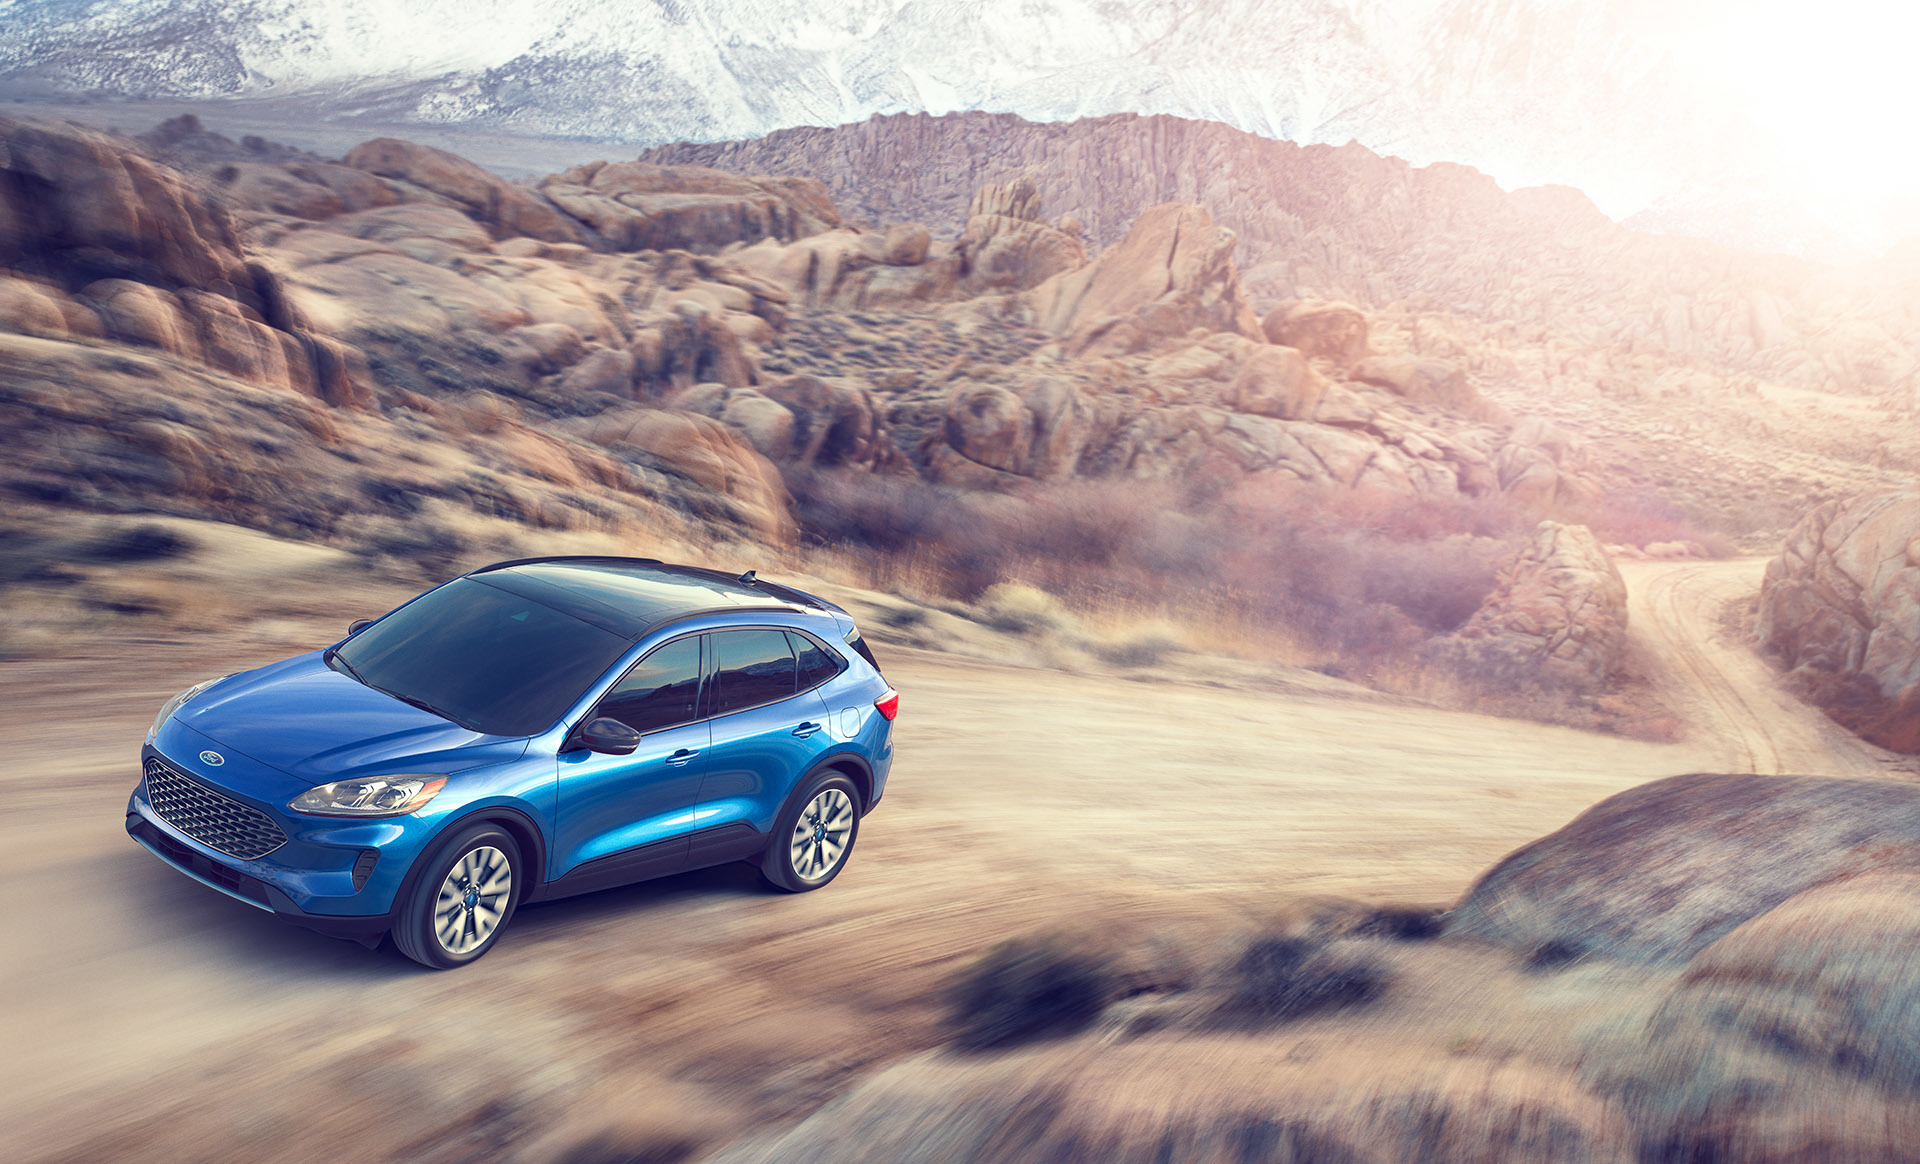 Blue CUV automobile driving up between hills